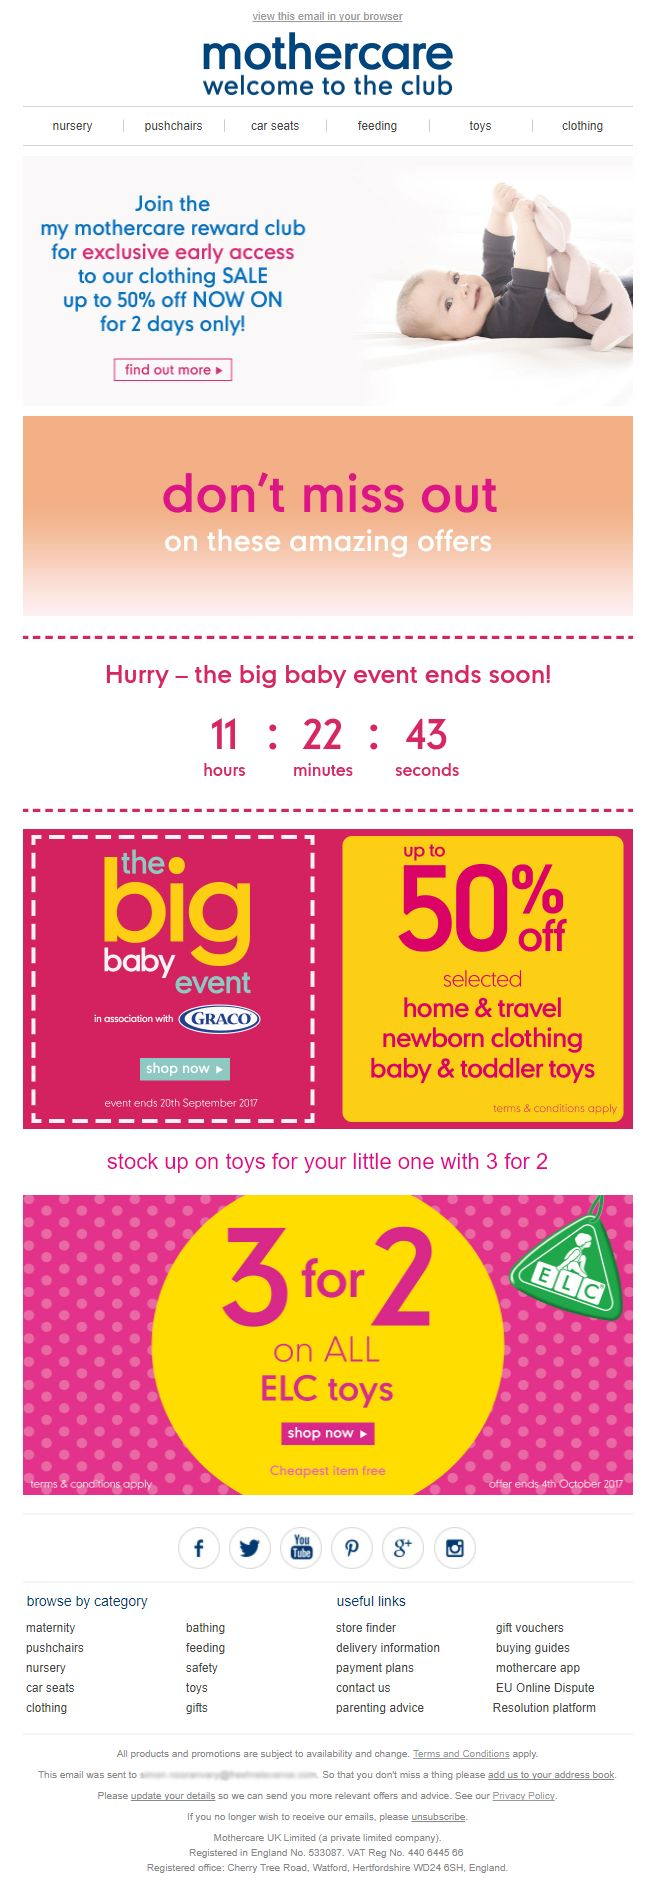 Event Email with Countdown Timer from Mothercare #EmailMarketing #Email #Marketing #Event #Countdown #Timer